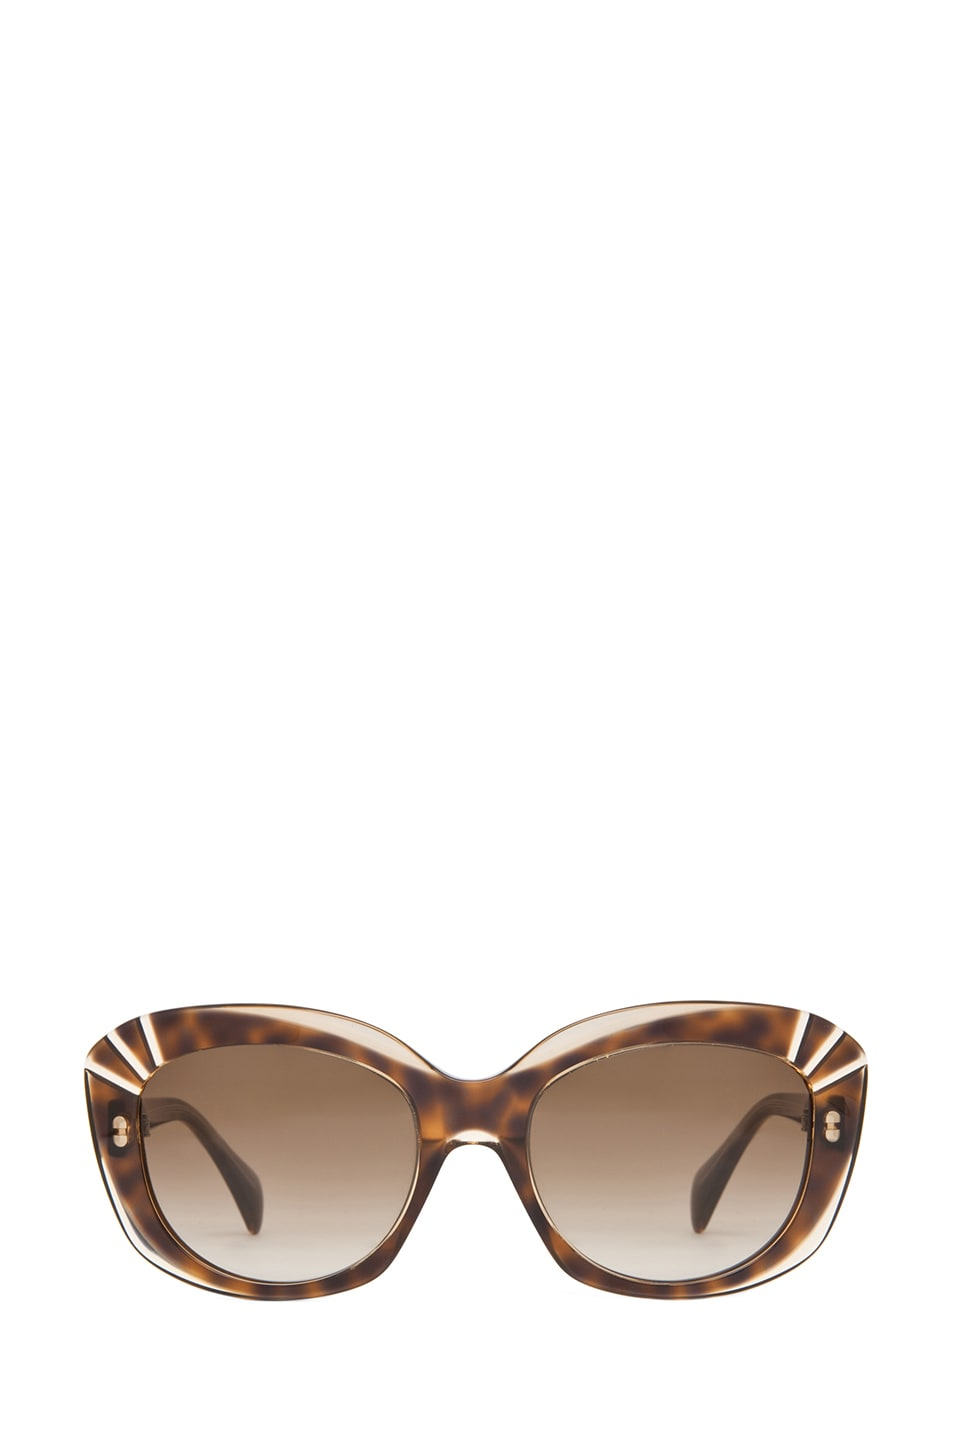 Image 1 of Alexander McQueen 4214 Sunglasses in Champagne Havana & Brown Gradient